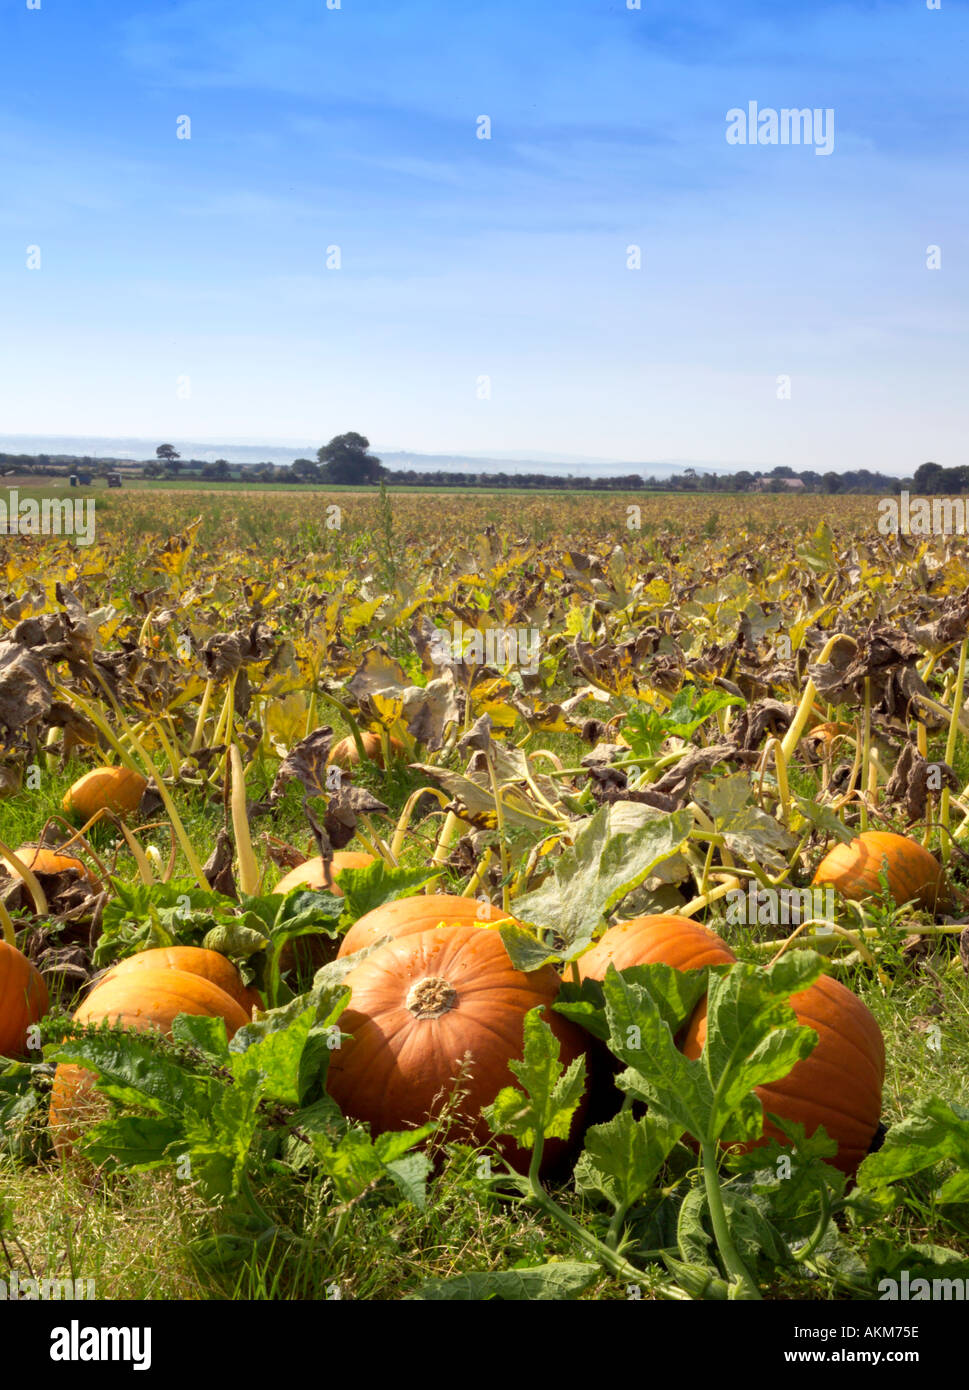 PUMPKINS GROWING IN FIELD IN THE SUNSHINE - Stock Image